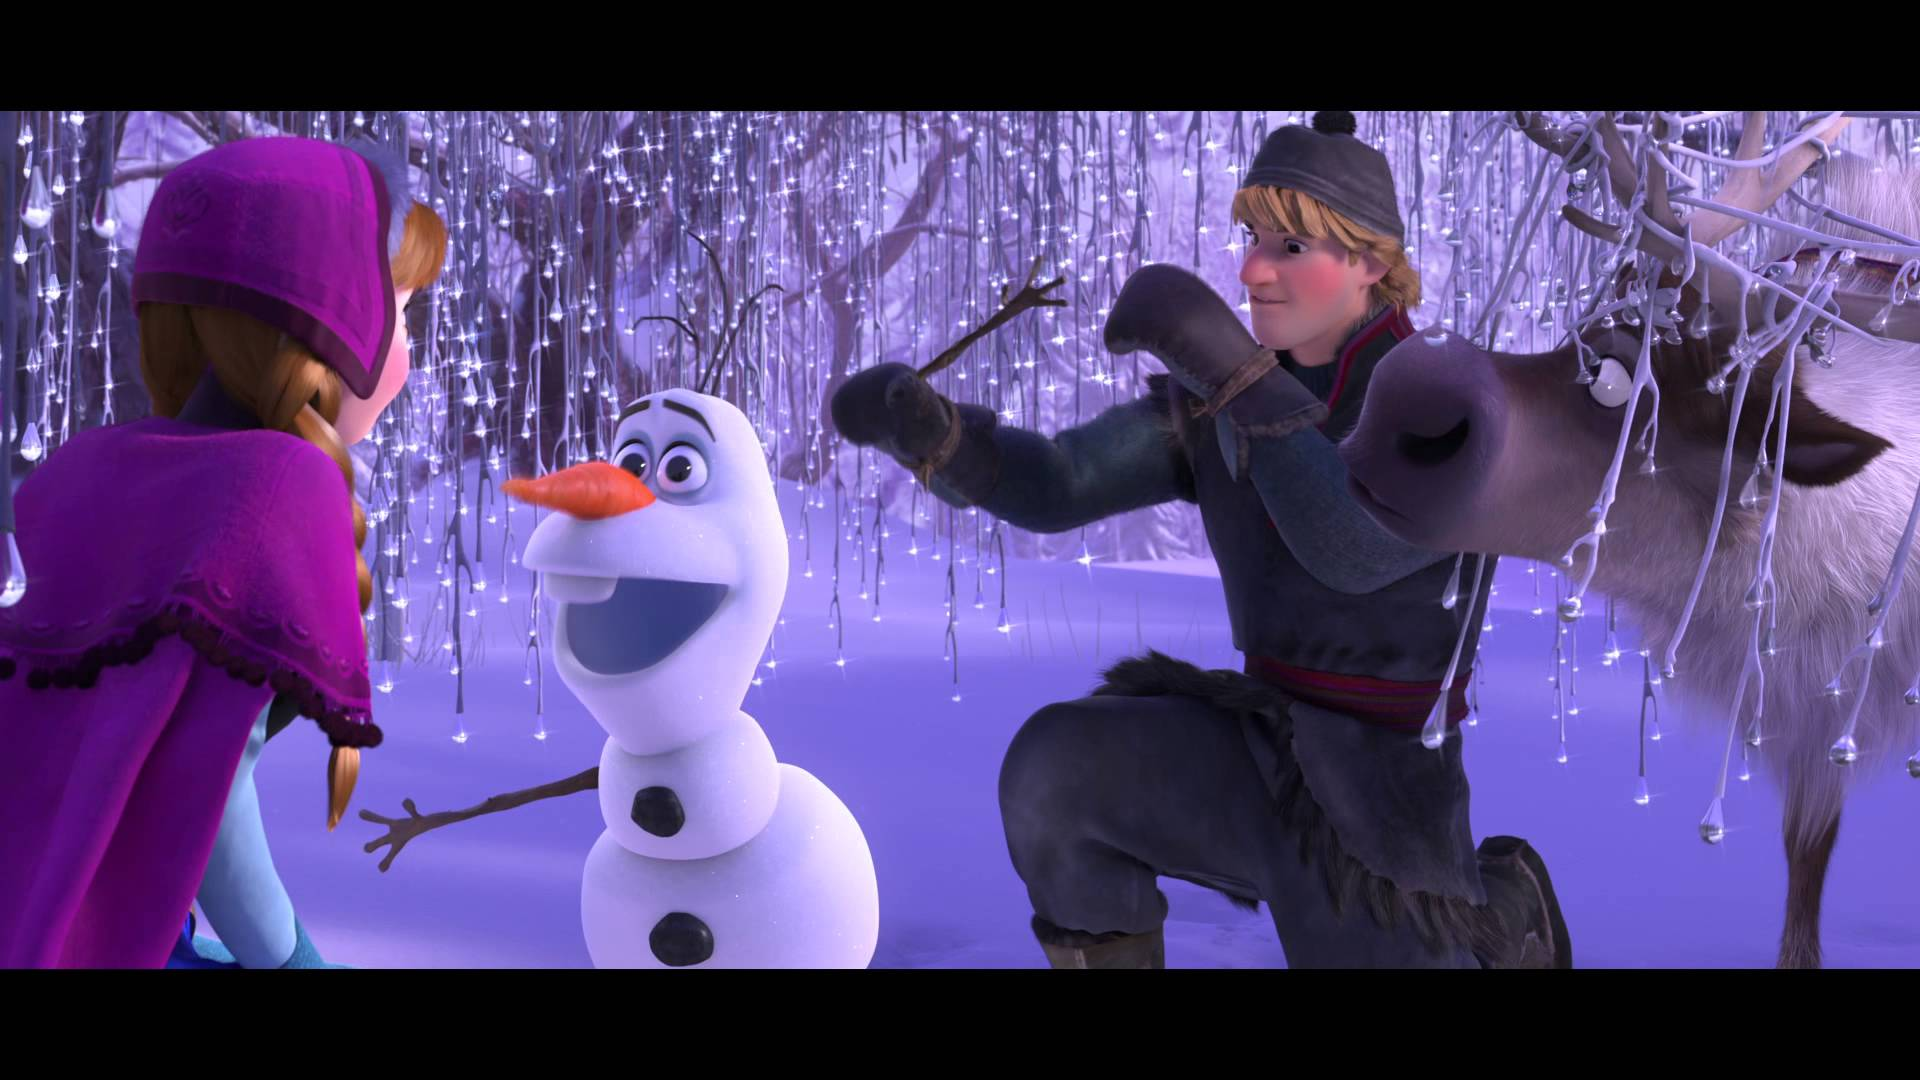 Olaf The Snowman Wallpaper Hd Images Pictures   Becuo 1920x1080